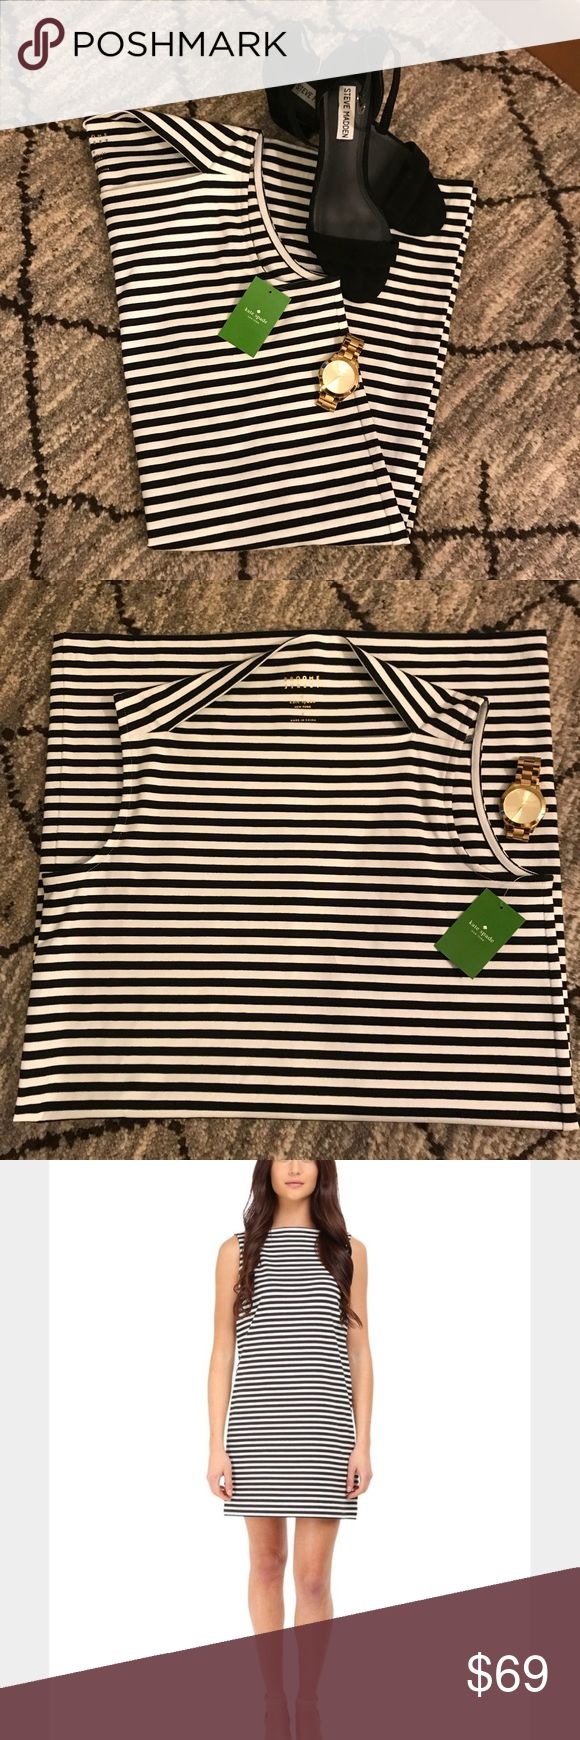 NWT kate spade Stripe Everyday Shift Dress kate spade Stripe Everyday Shift Dress in Broome Street Black Size Small. New with tags! Comfortable, light dress to wear 'everyday' and also could be paired with heels and pearls for a night out! kate spade Dresses